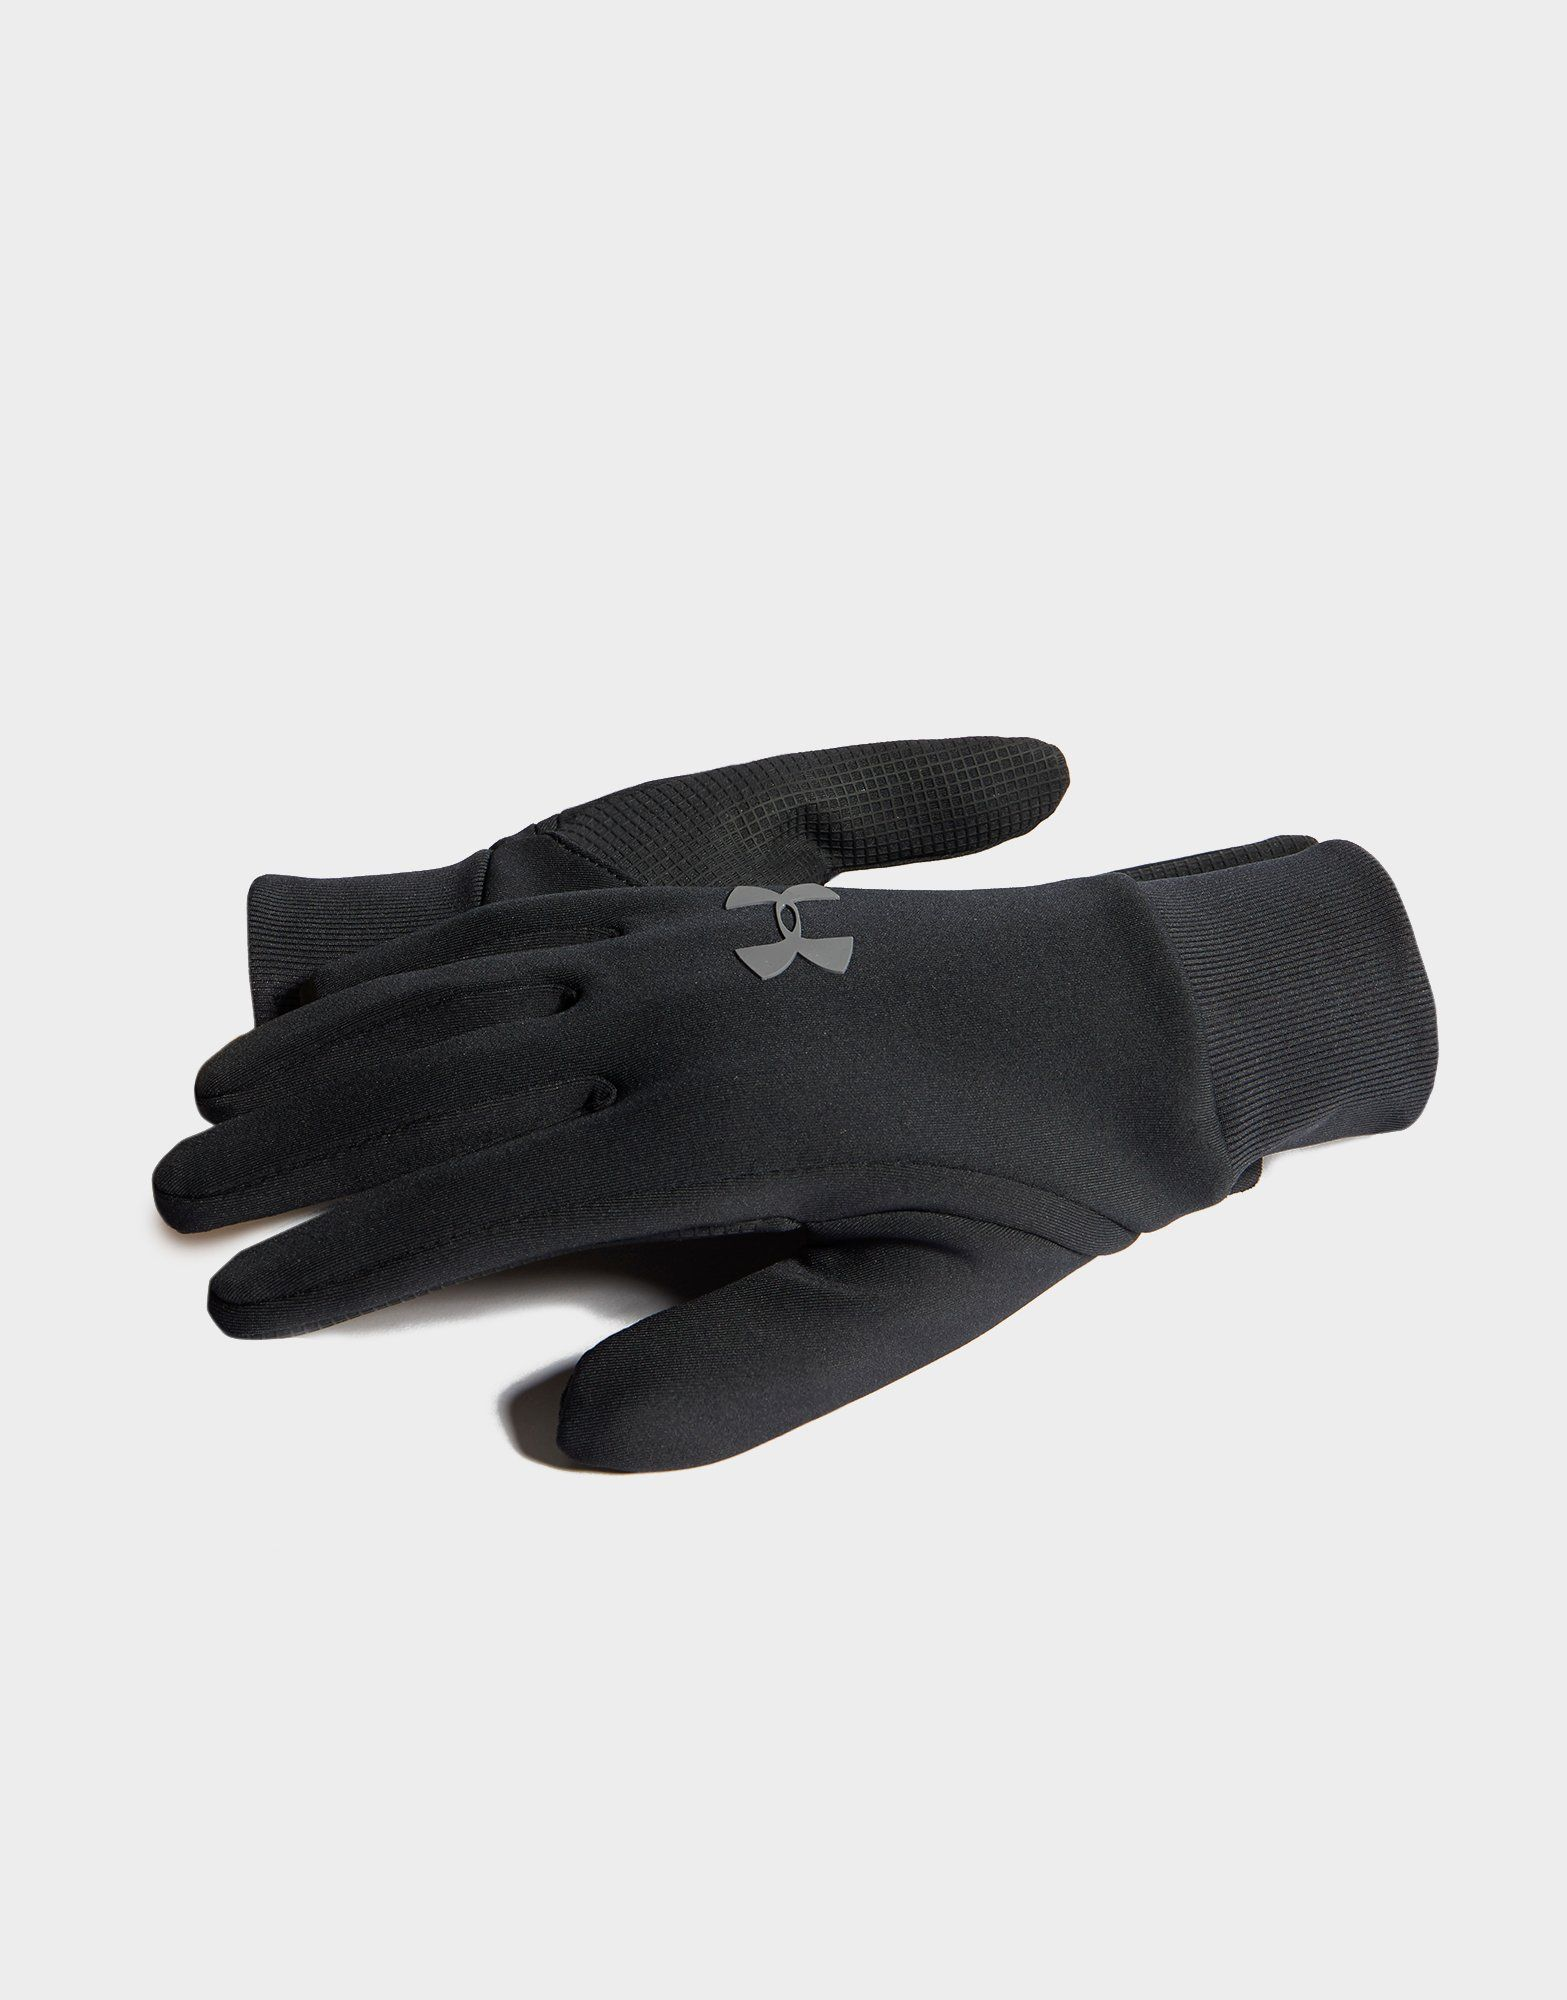 Under Armour Etip 2.0 Guanti touchscreen